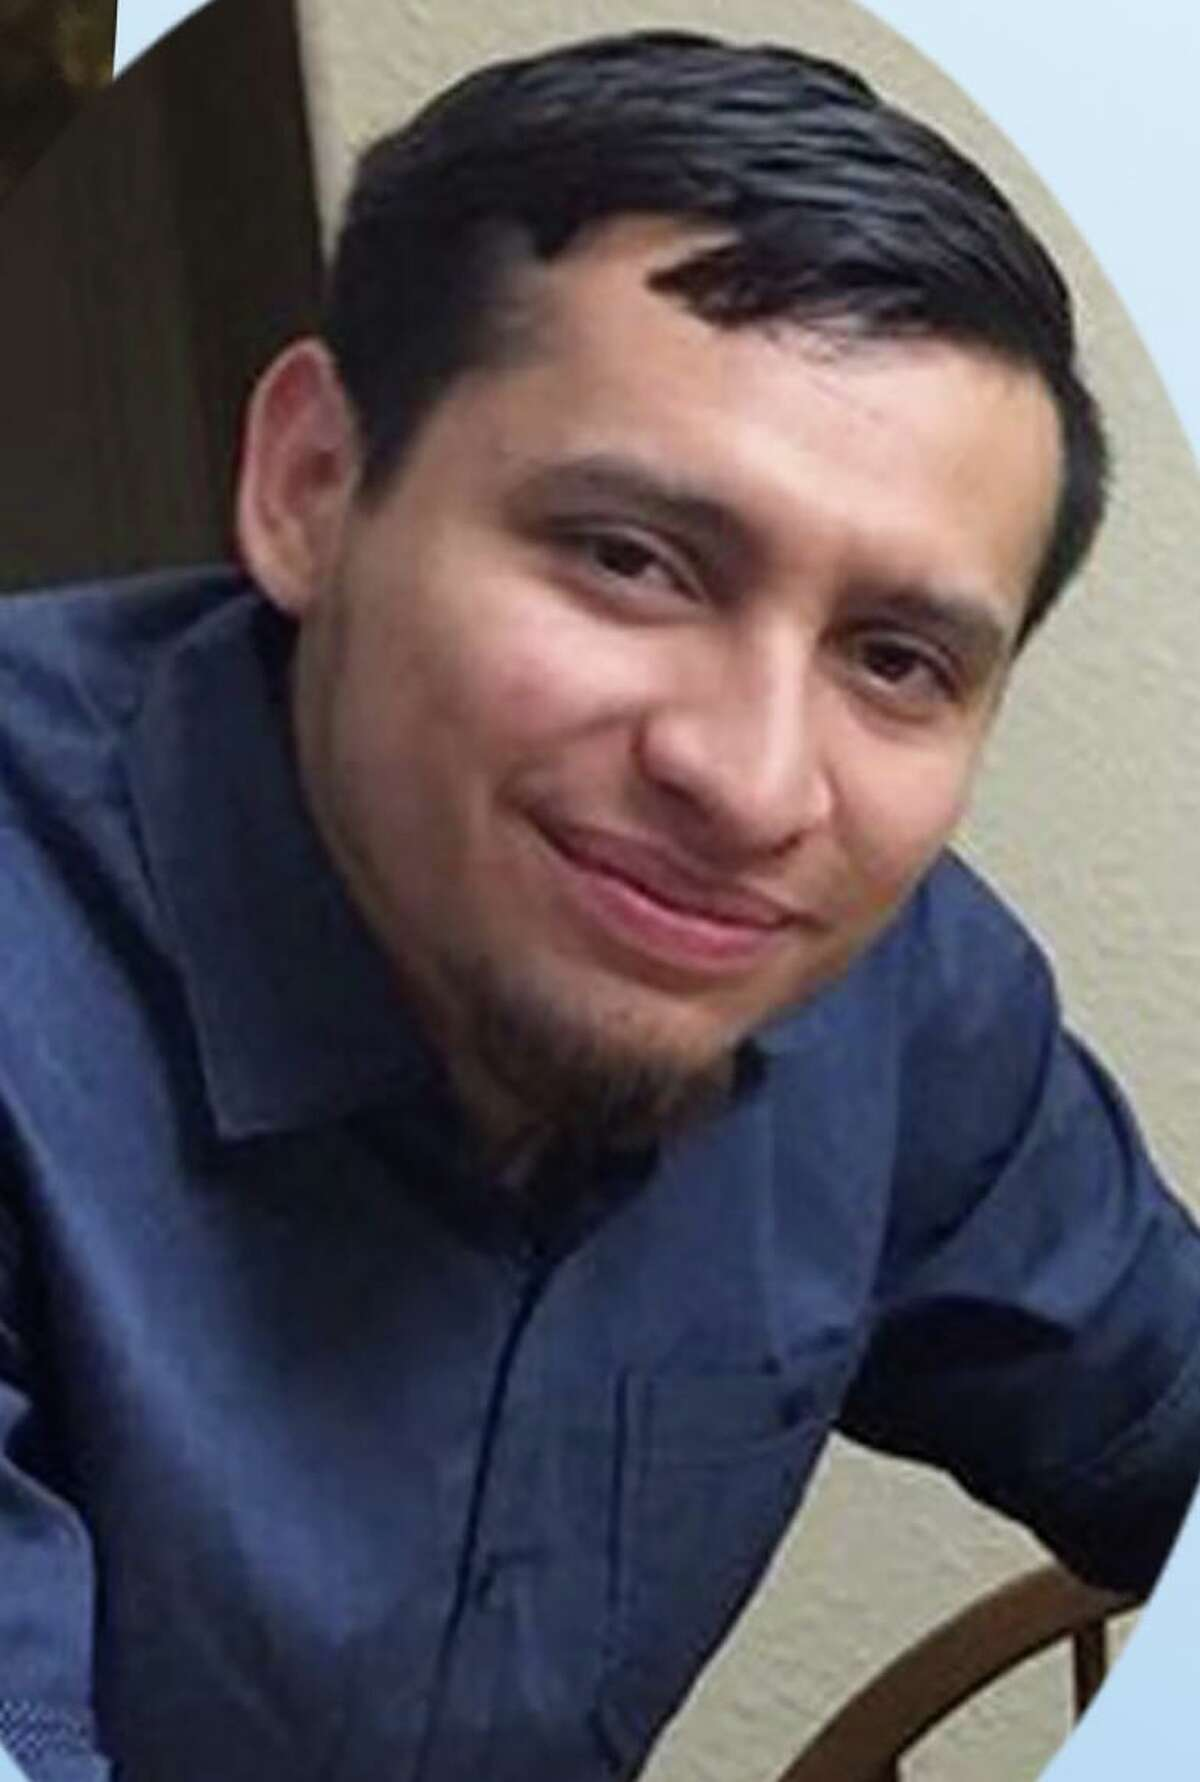 Two men were convicted Friday, March 29 of using a gun and aiding and abetting in the fatal robbery of David Anthony Guzman Lopez, 25, an armored truck guard killed by a sniper in a sophisticated heist at a Houston Wells Fargo branch on Aug. 29, 2016. The robbers took $120,000 in cash.